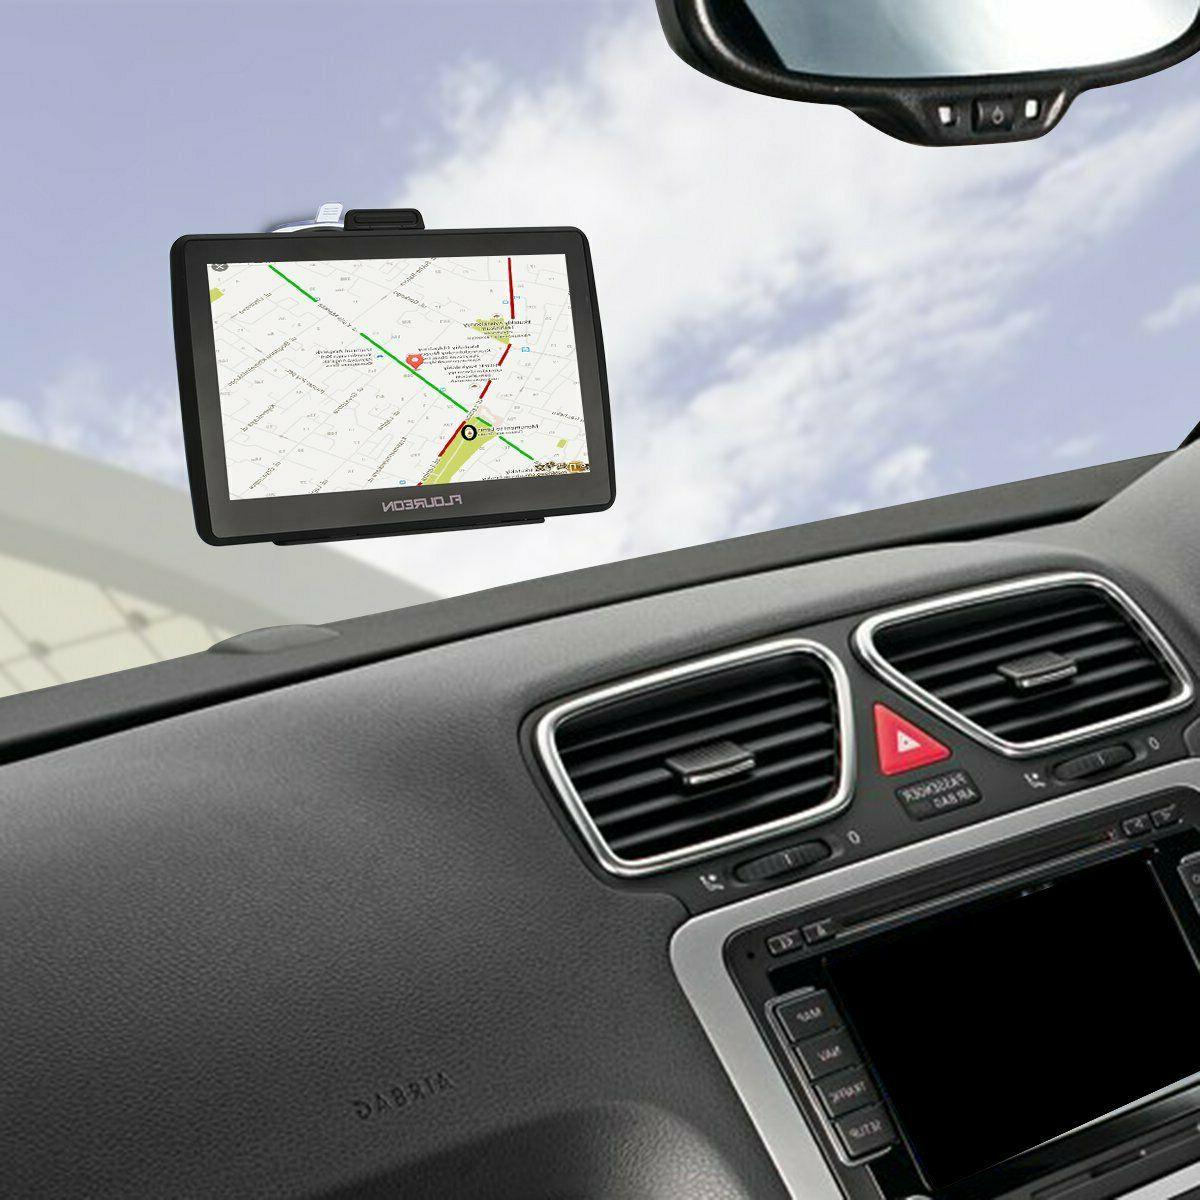 Gps Truck Driver Big Rig Accessories Navigation